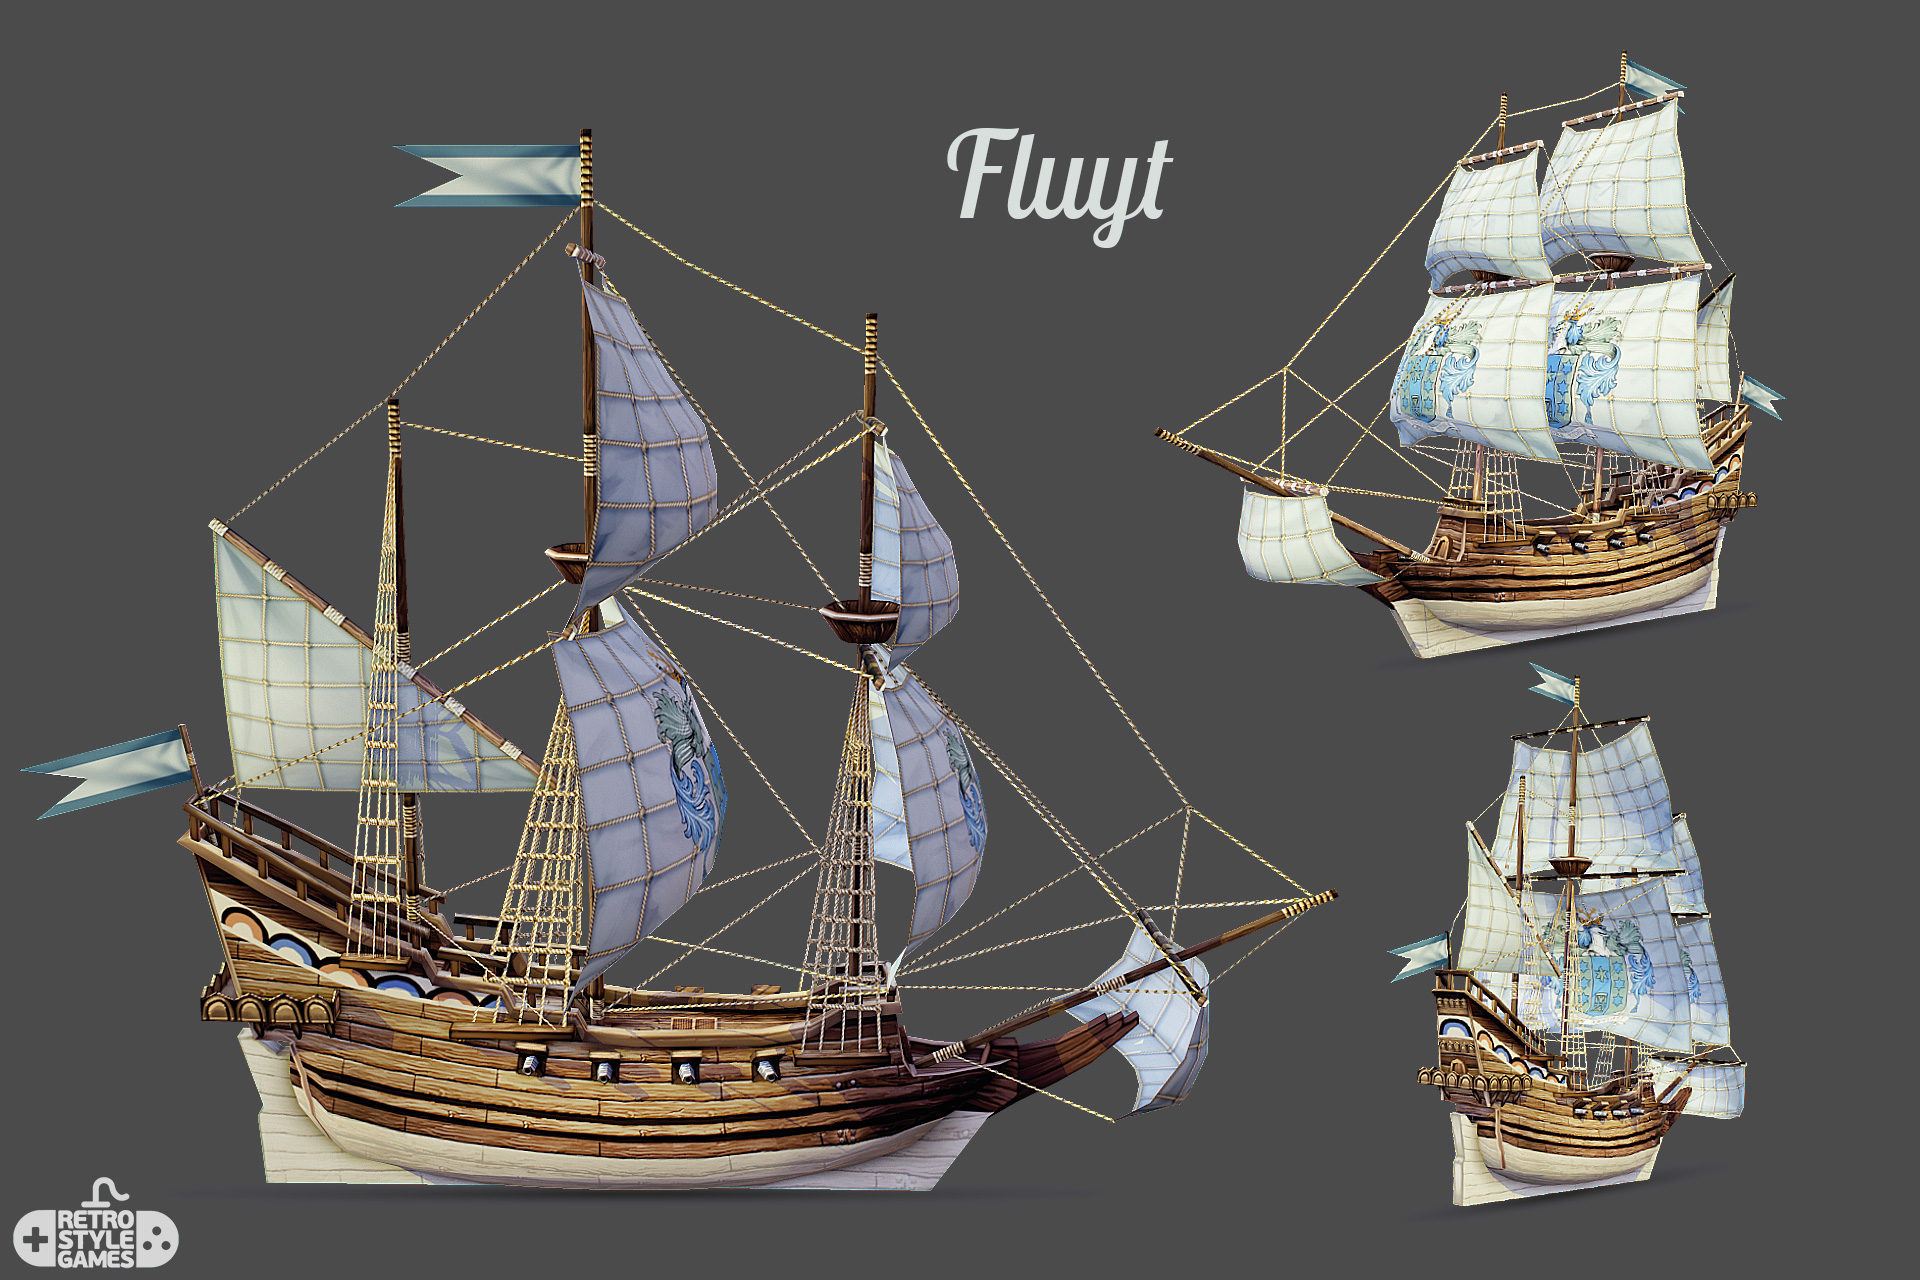 3d low poly pirate ship FLUYT